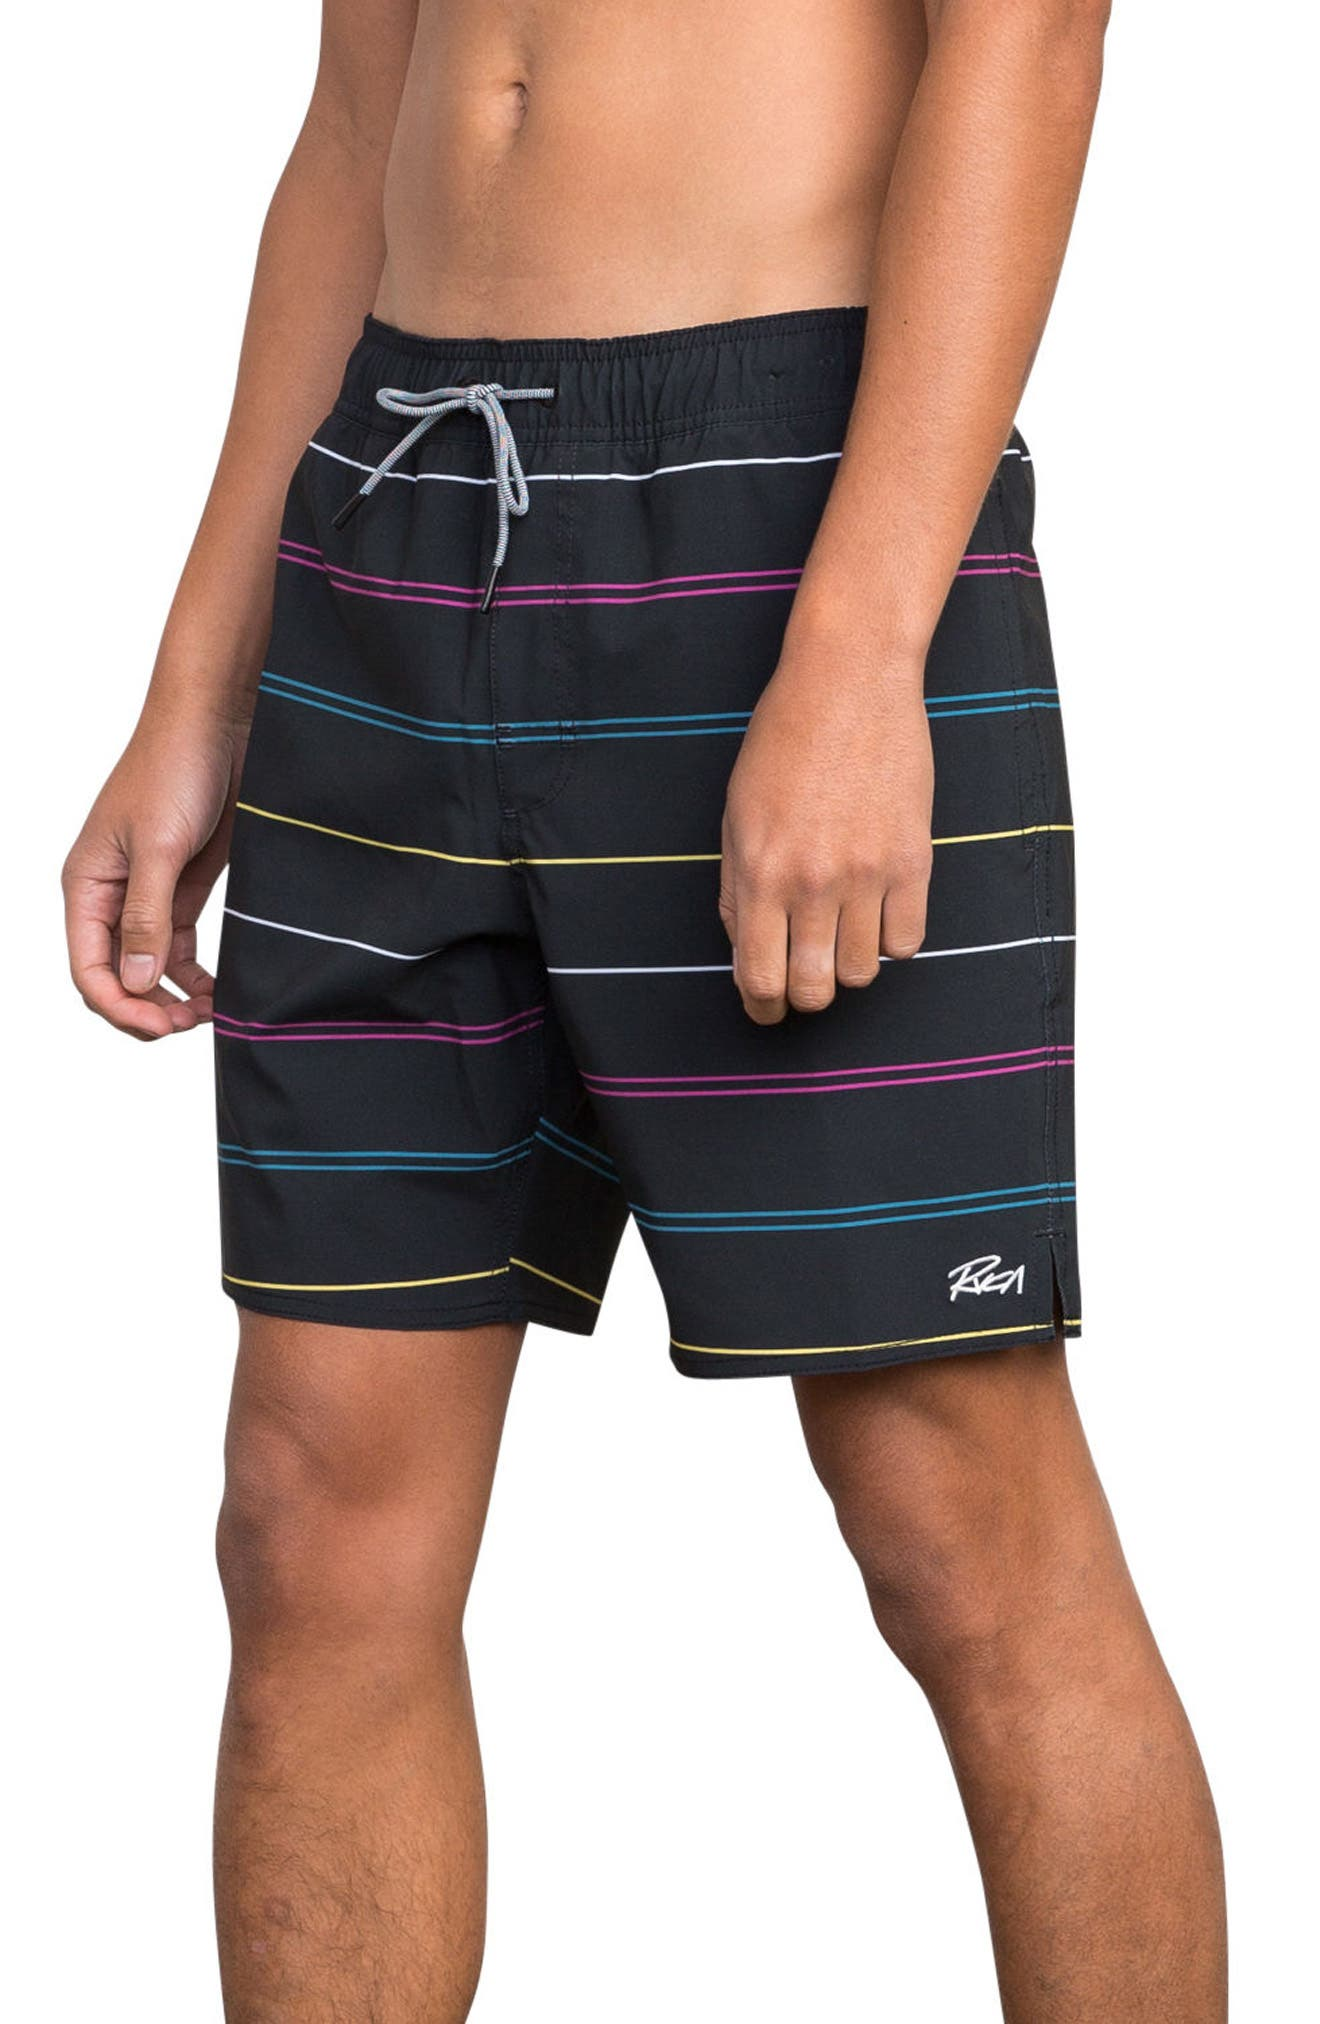 Middle Elastic Swim Trunks,                             Alternate thumbnail 3, color,                             008